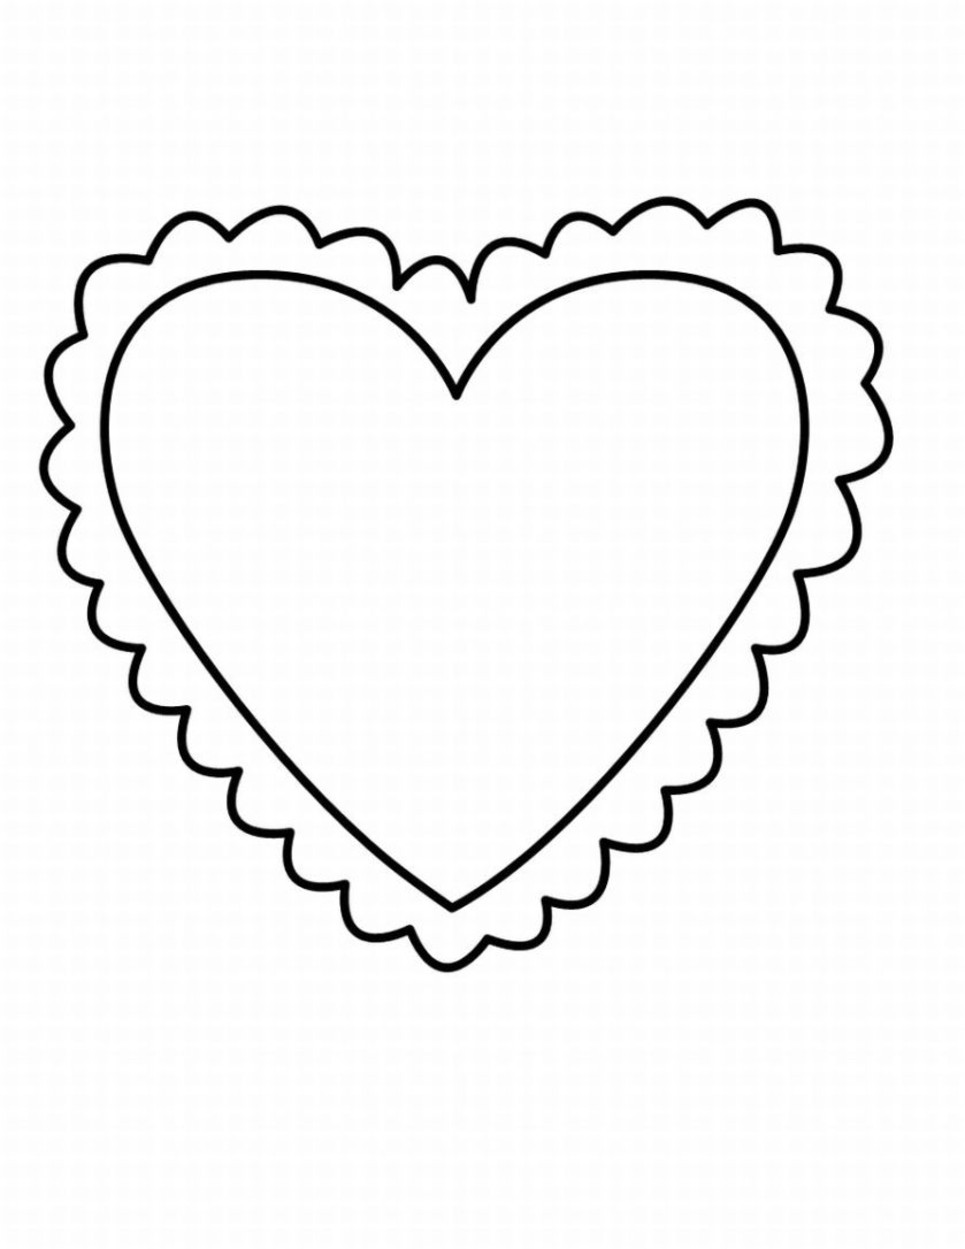 free printable heart coloring pages for kids valentine heart coloring pages best coloring pages for kids pages coloring heart kids free printable for